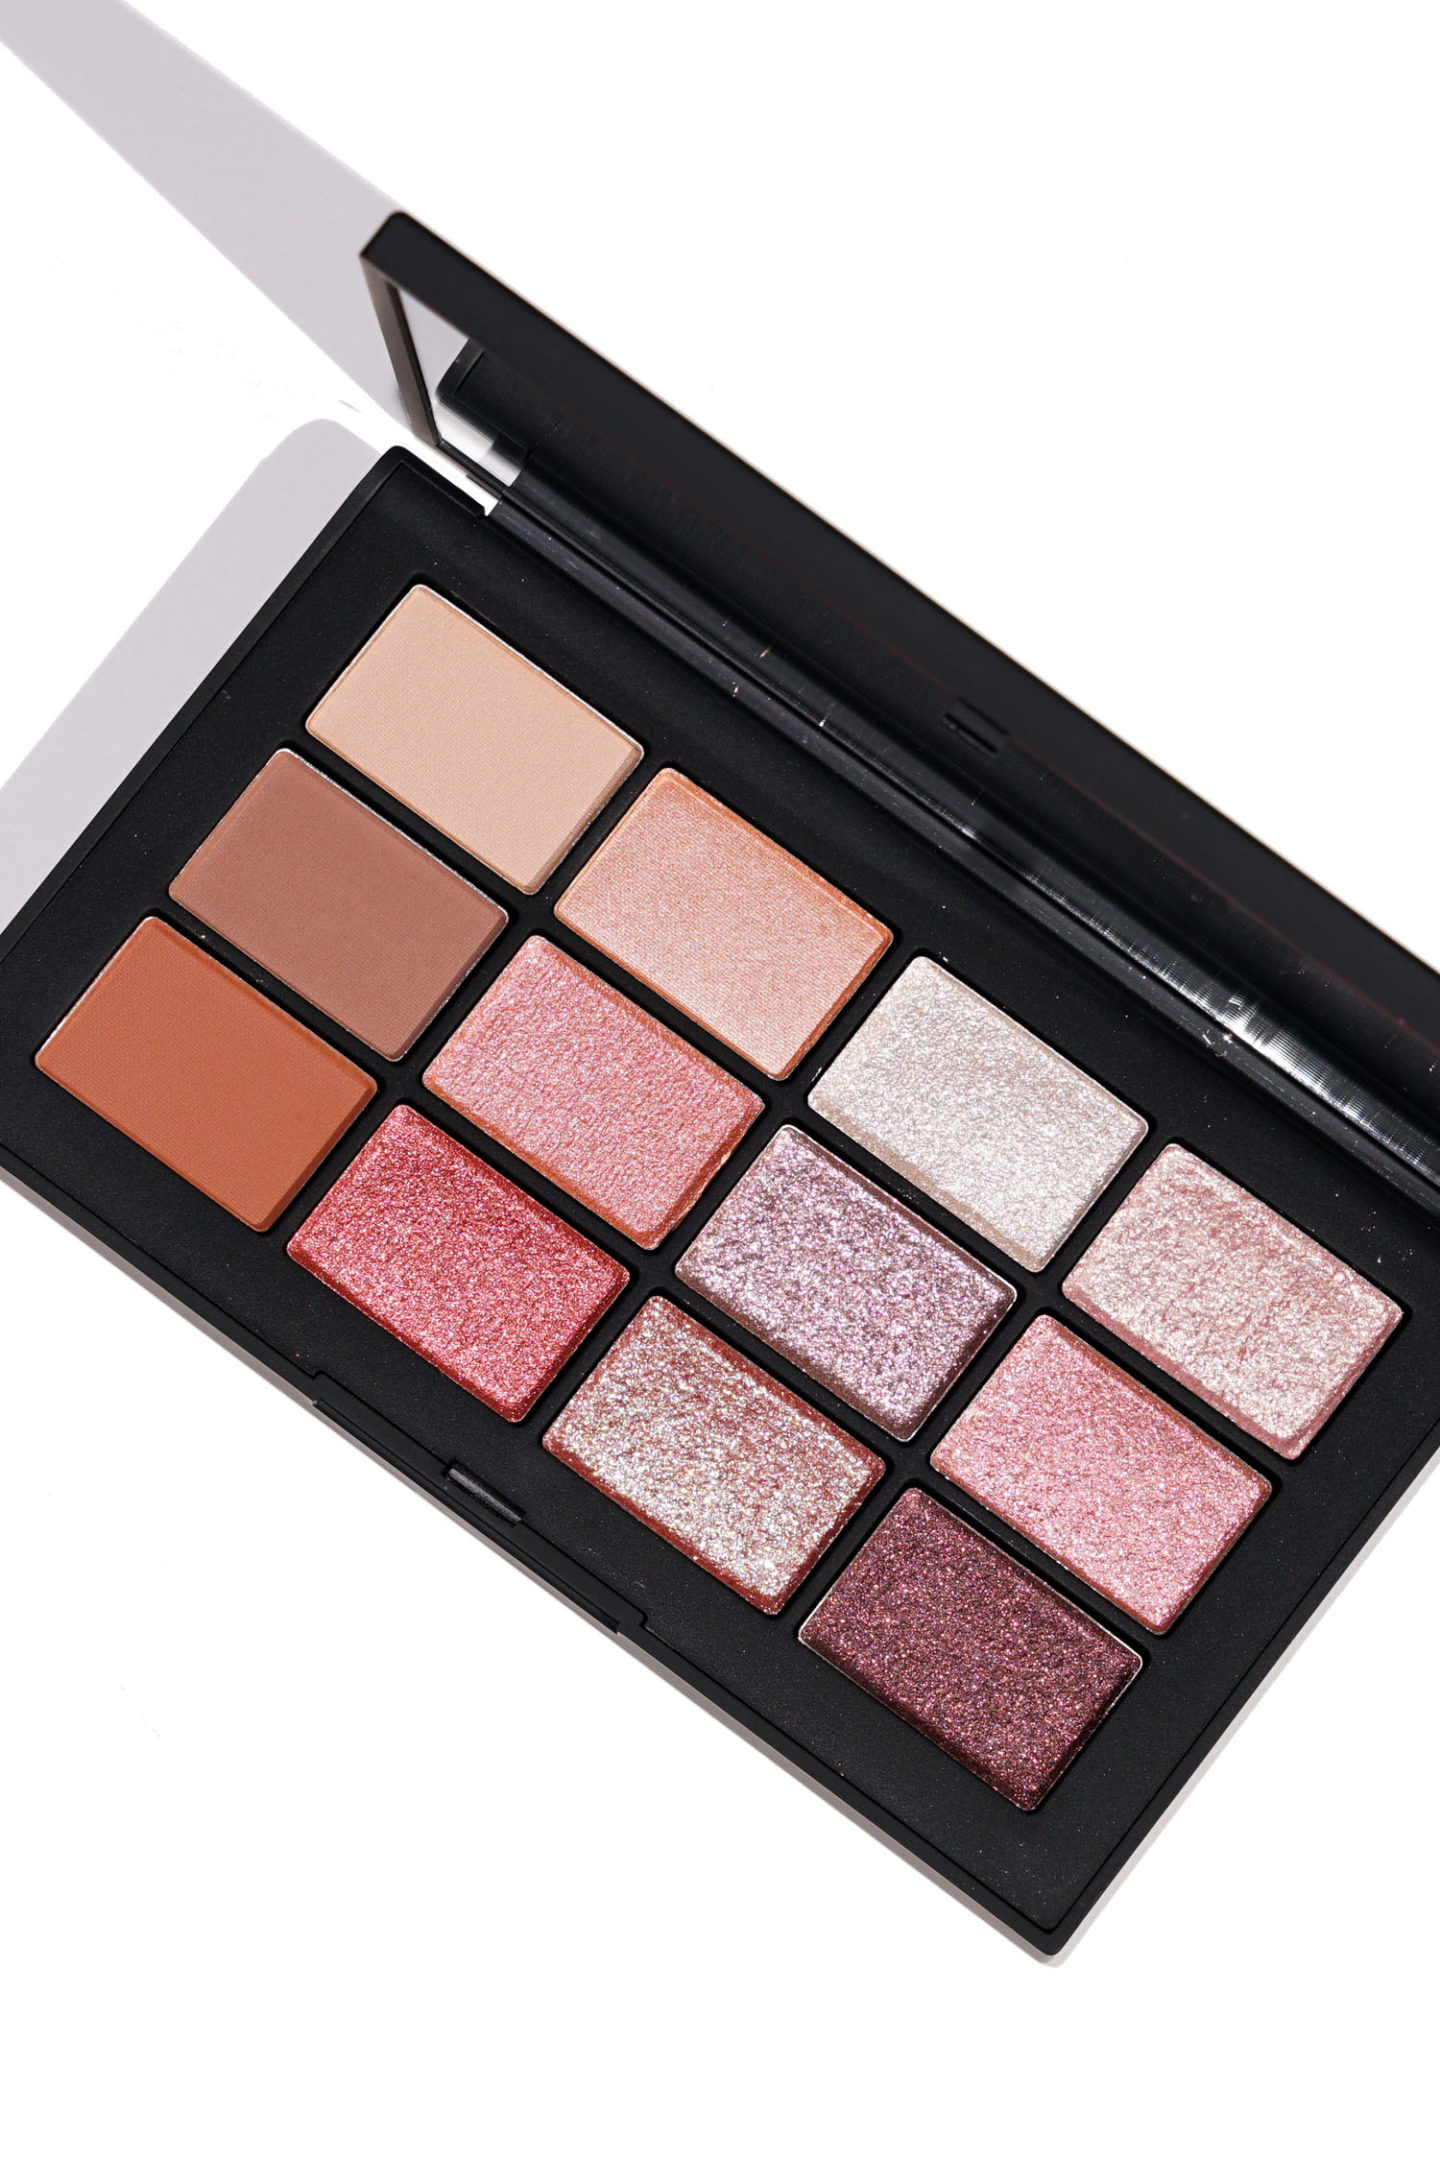 NARS Ignited Eyeshadow Palette | The Beauty Look Book